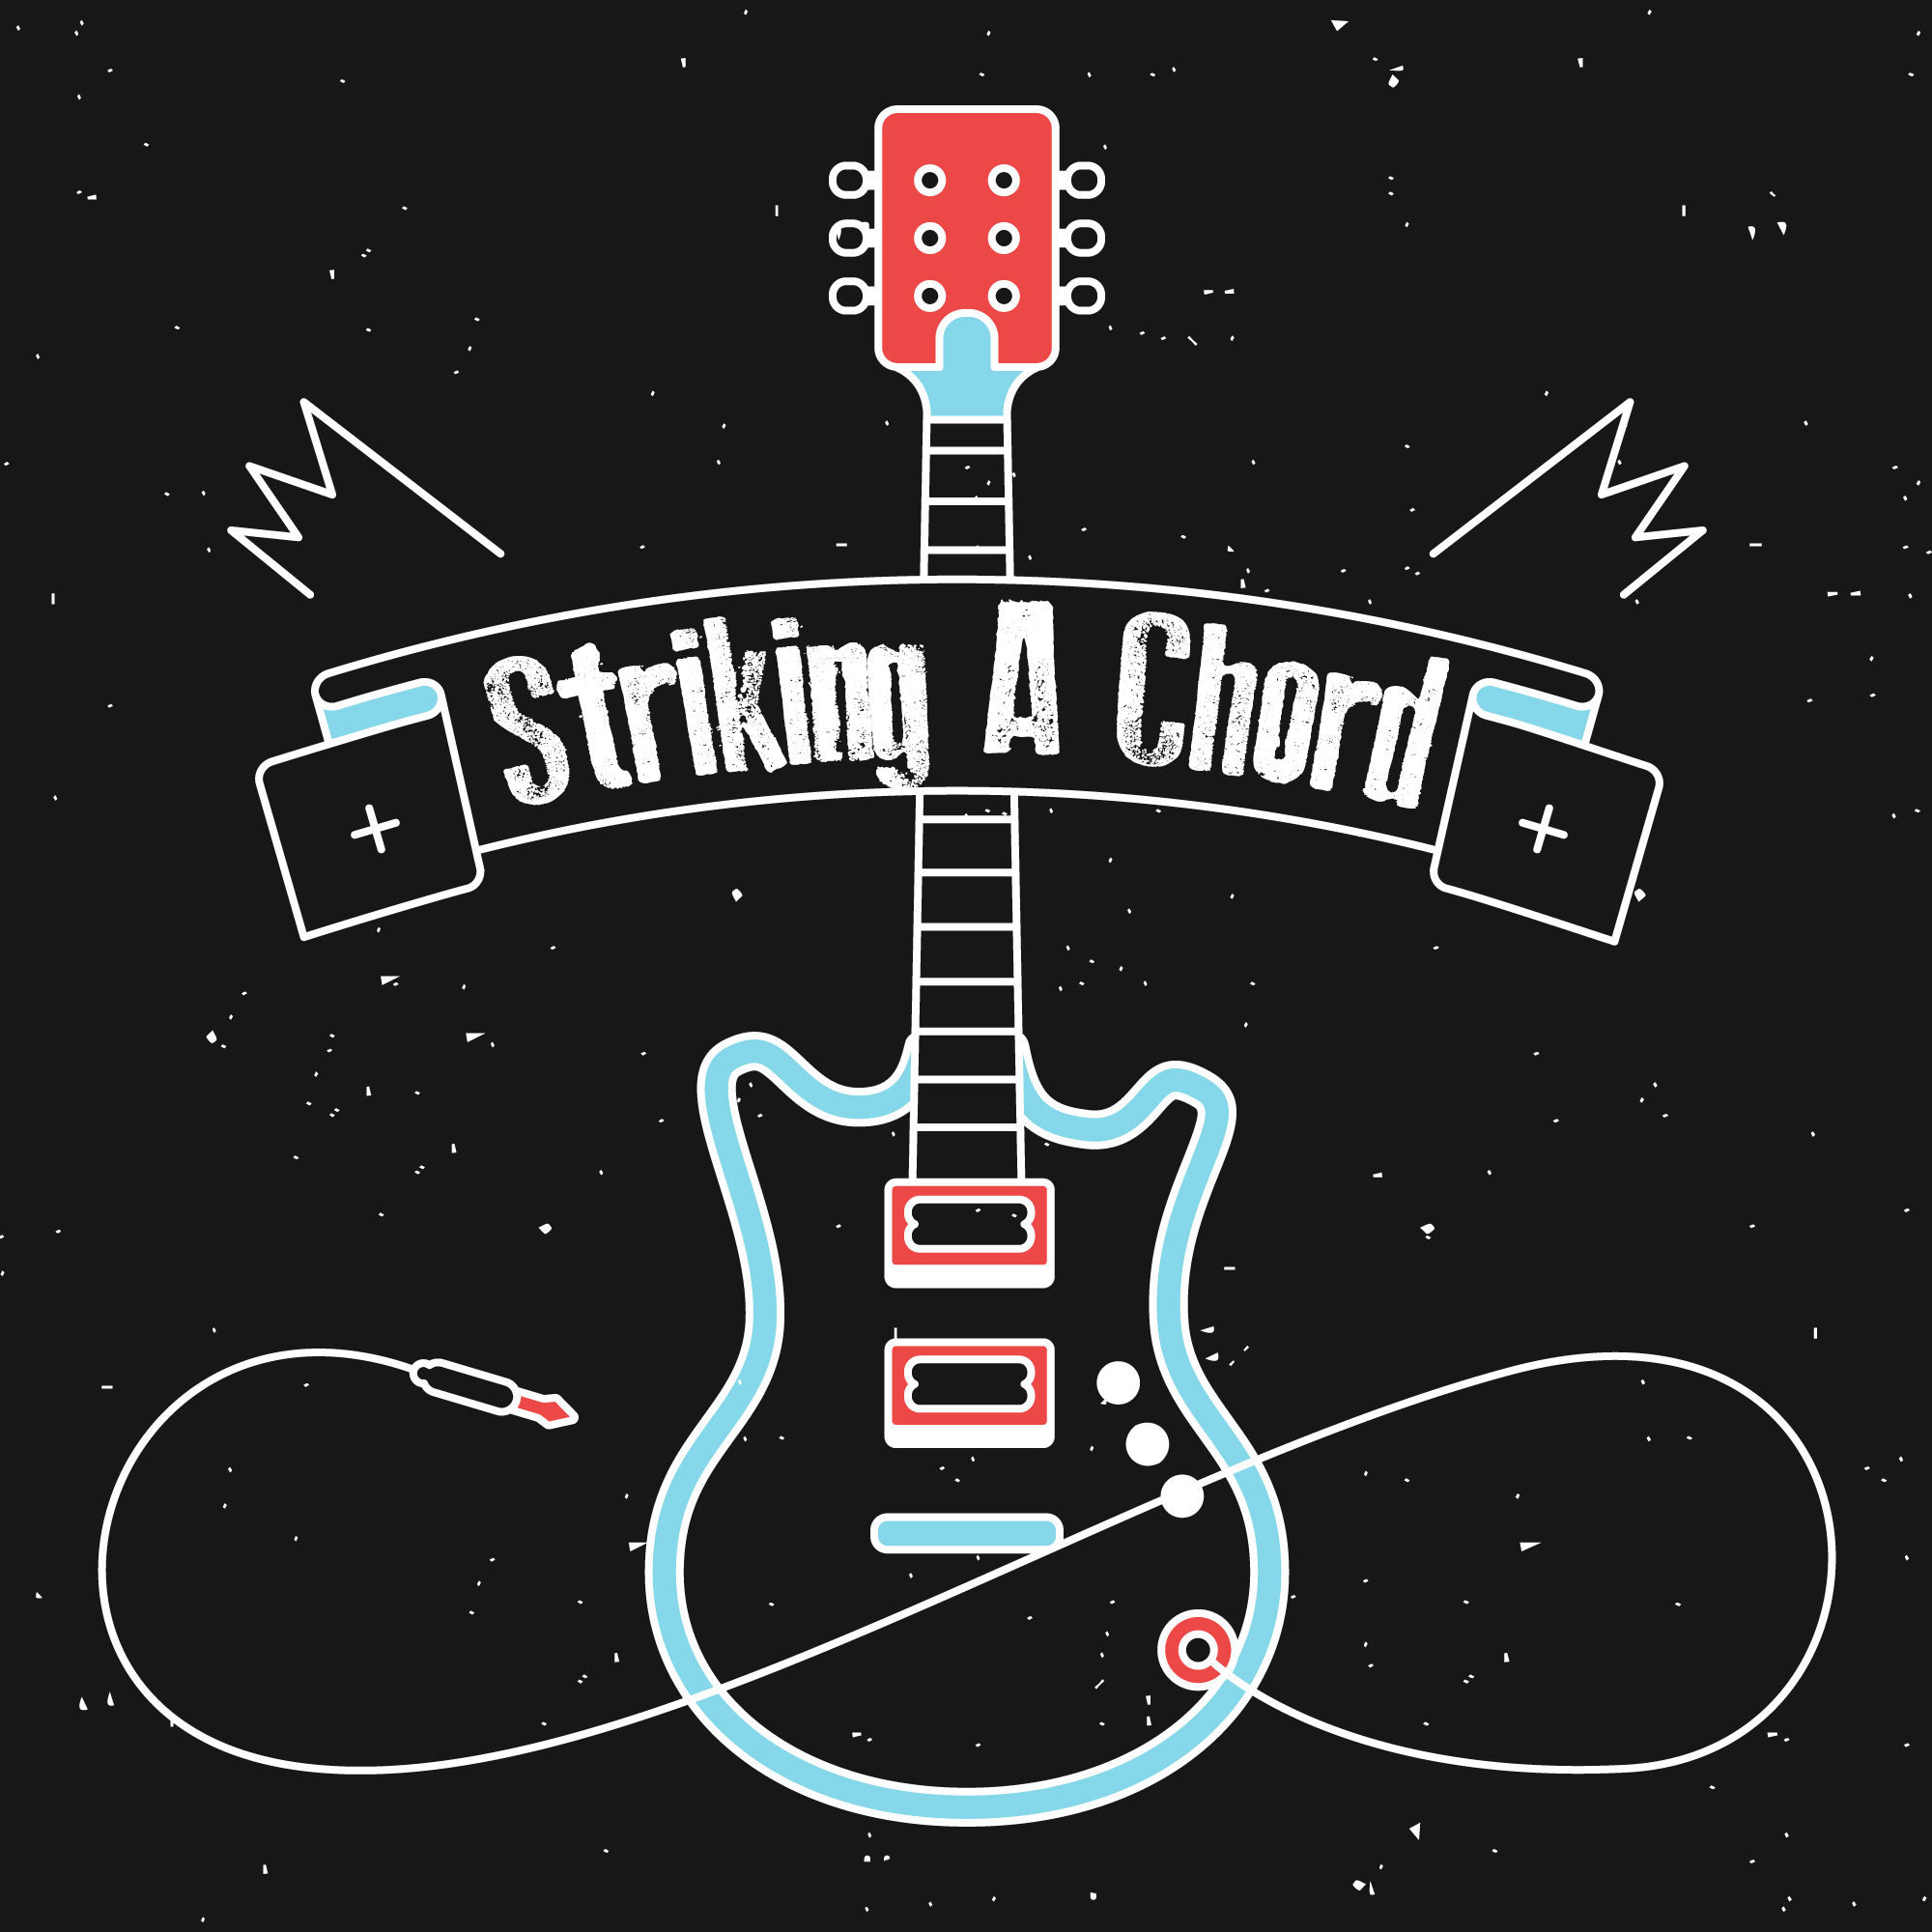 Striking A Chord